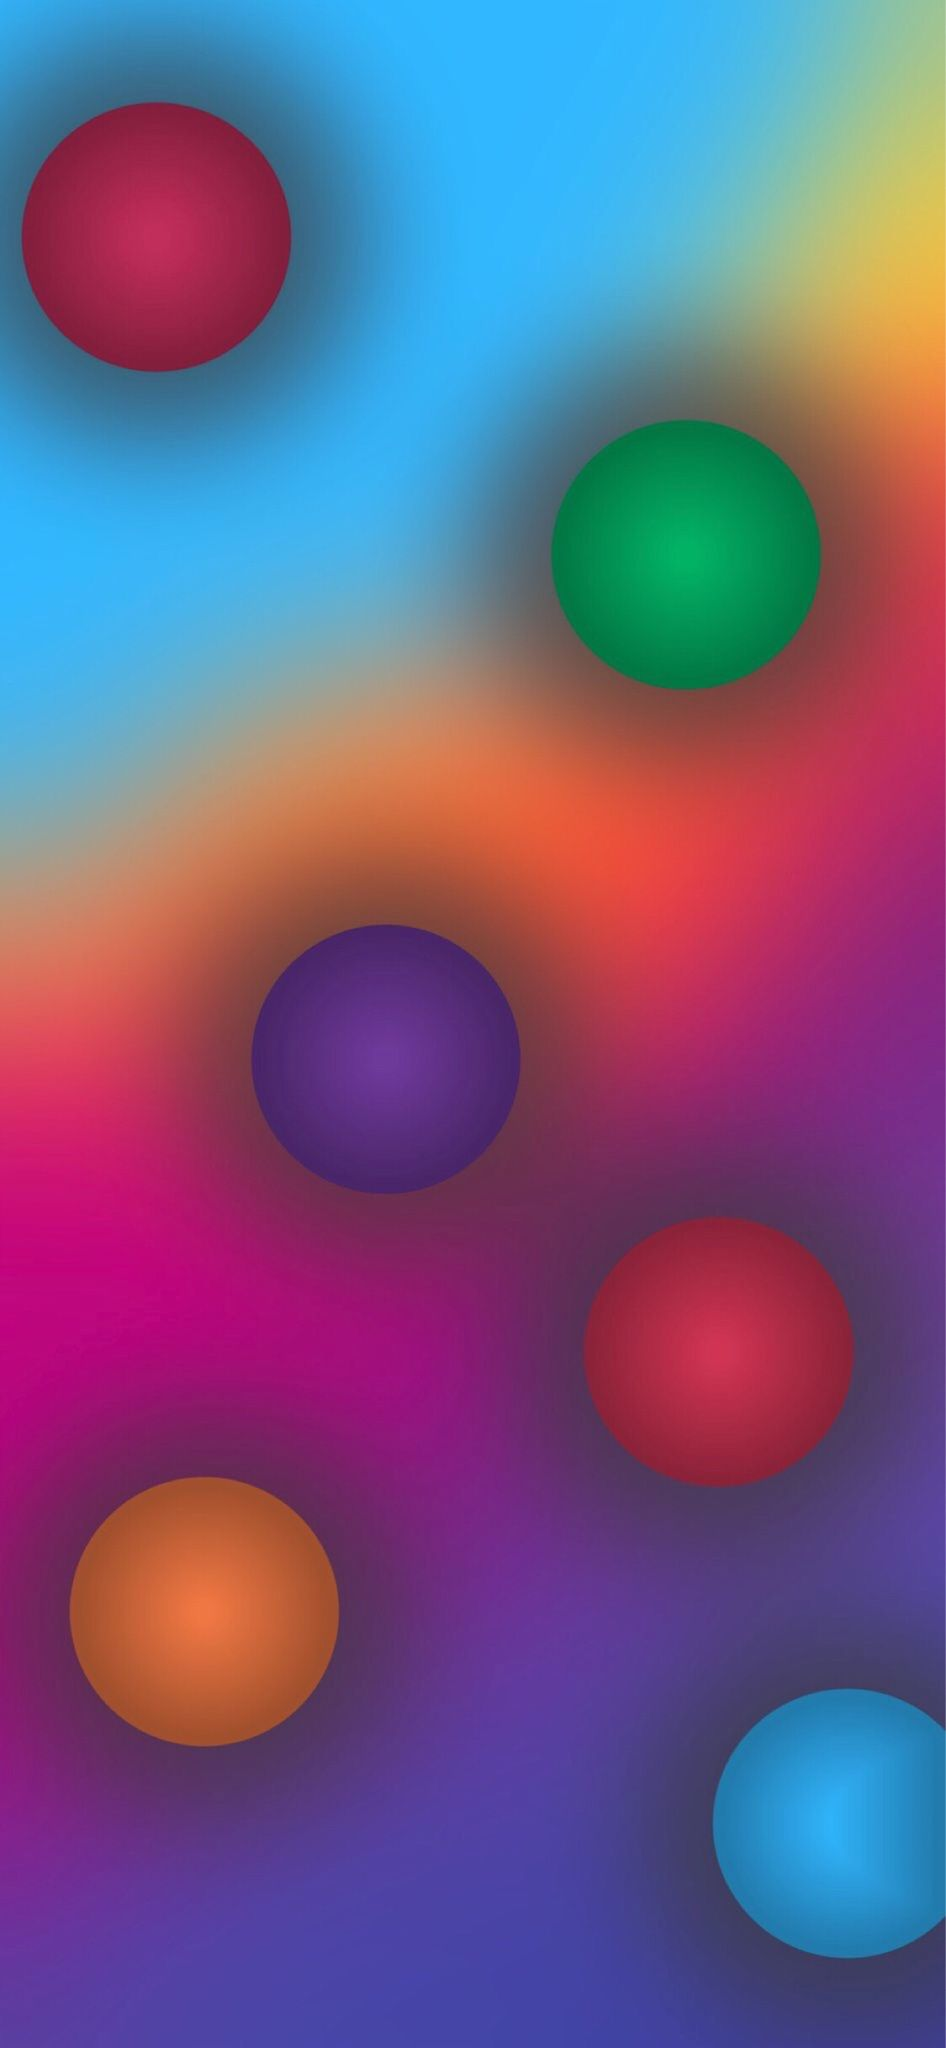 Beautiful Pictures Dots Rainbow Wallpaper Bubbles Wallpaper Colorful Wallpaper